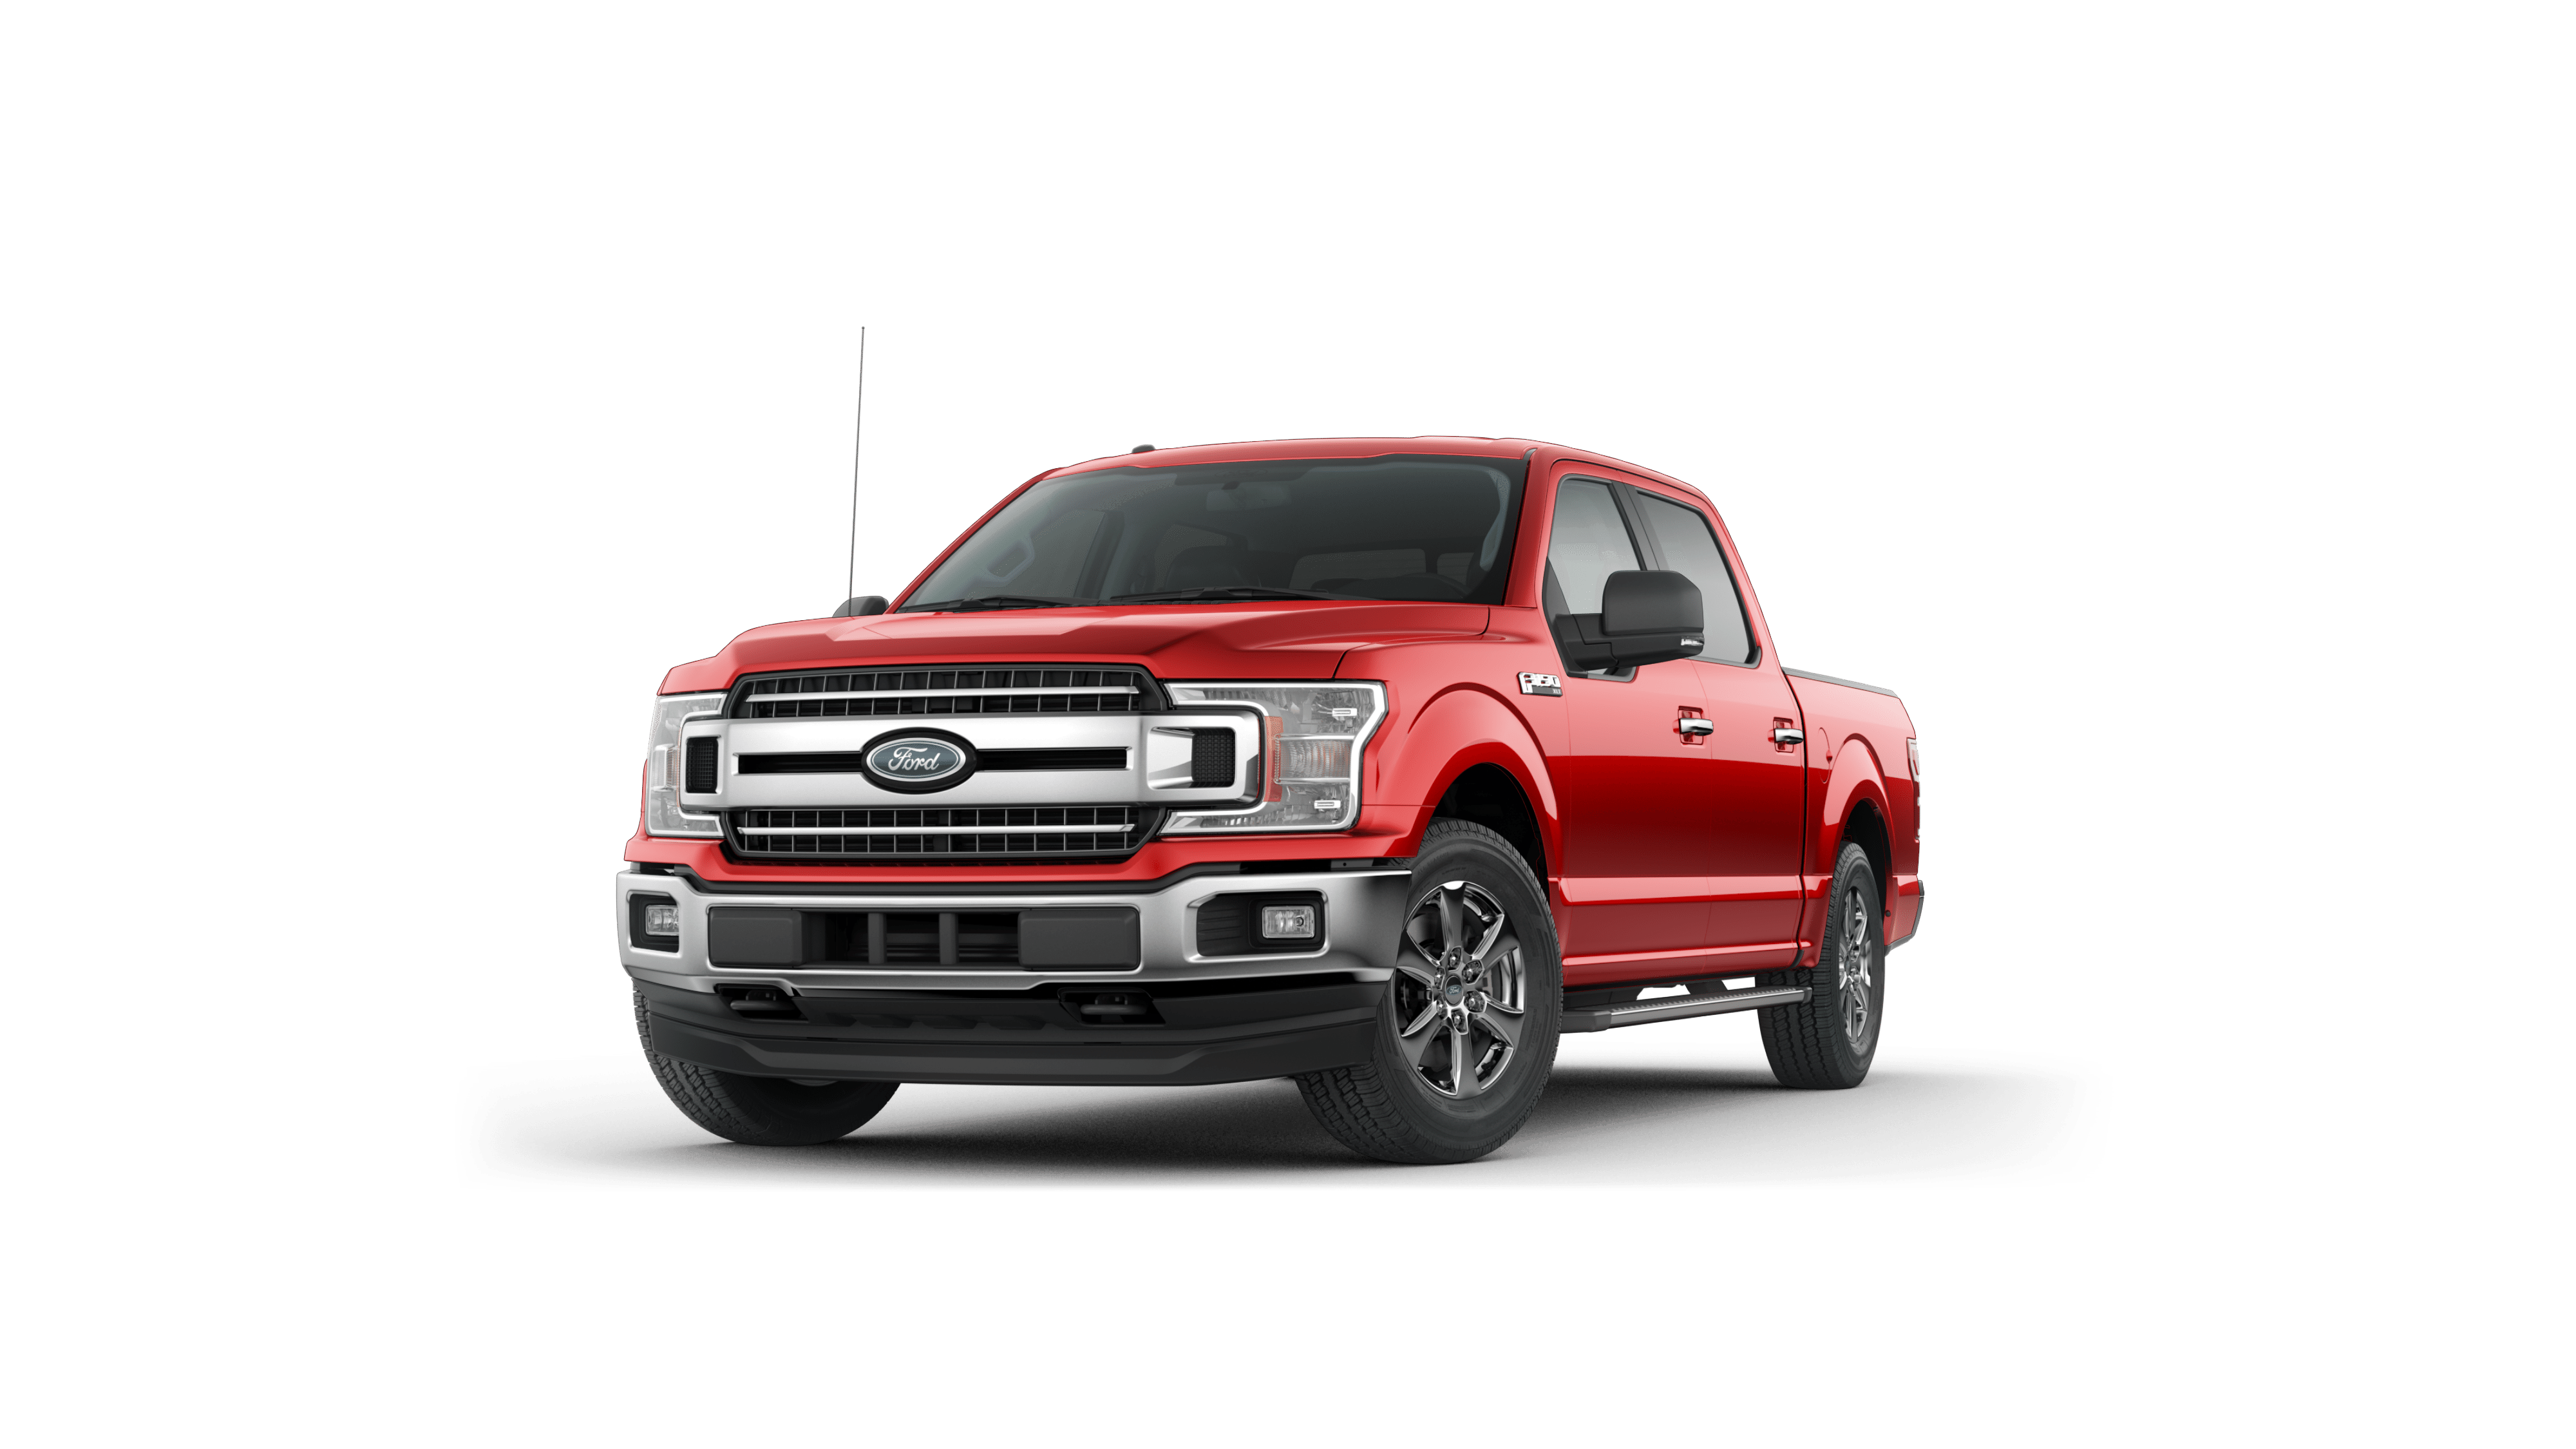 2018 ford f 150 for sale in marshall 1ftew1ep5jfd69239 boshears ford sales. Black Bedroom Furniture Sets. Home Design Ideas